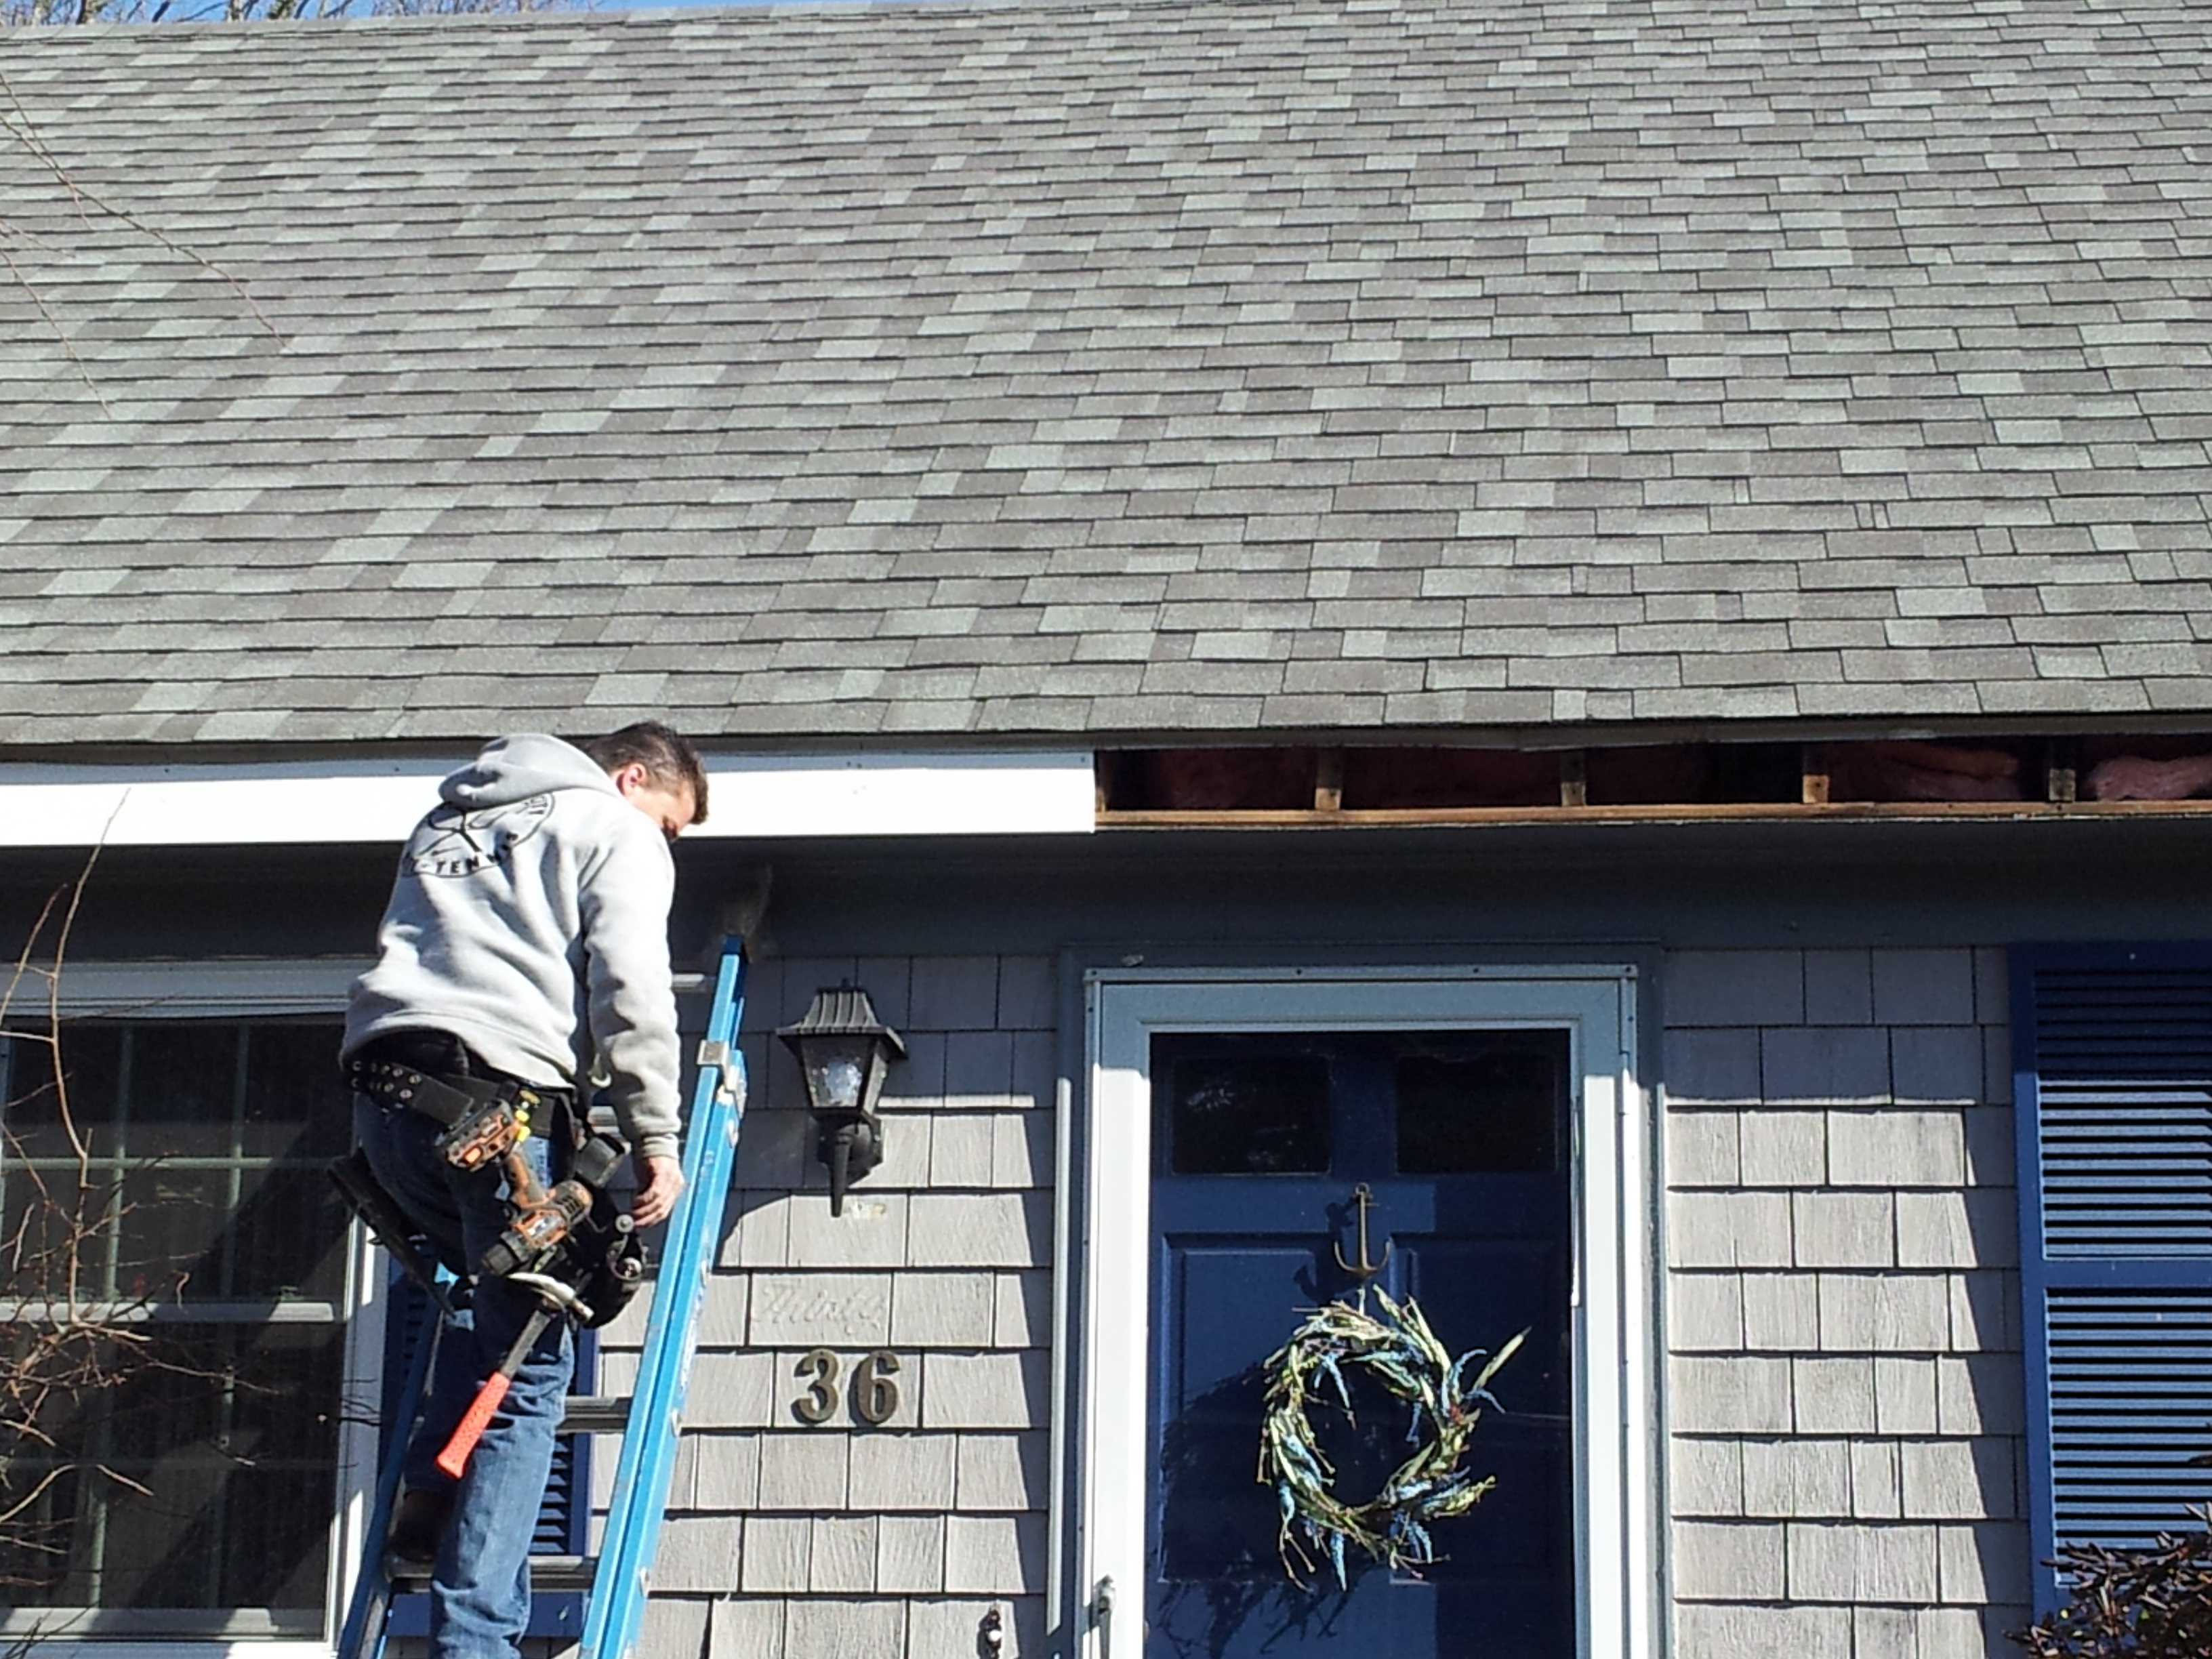 trim replacement – Gutter Pro on the job in Massachusetts